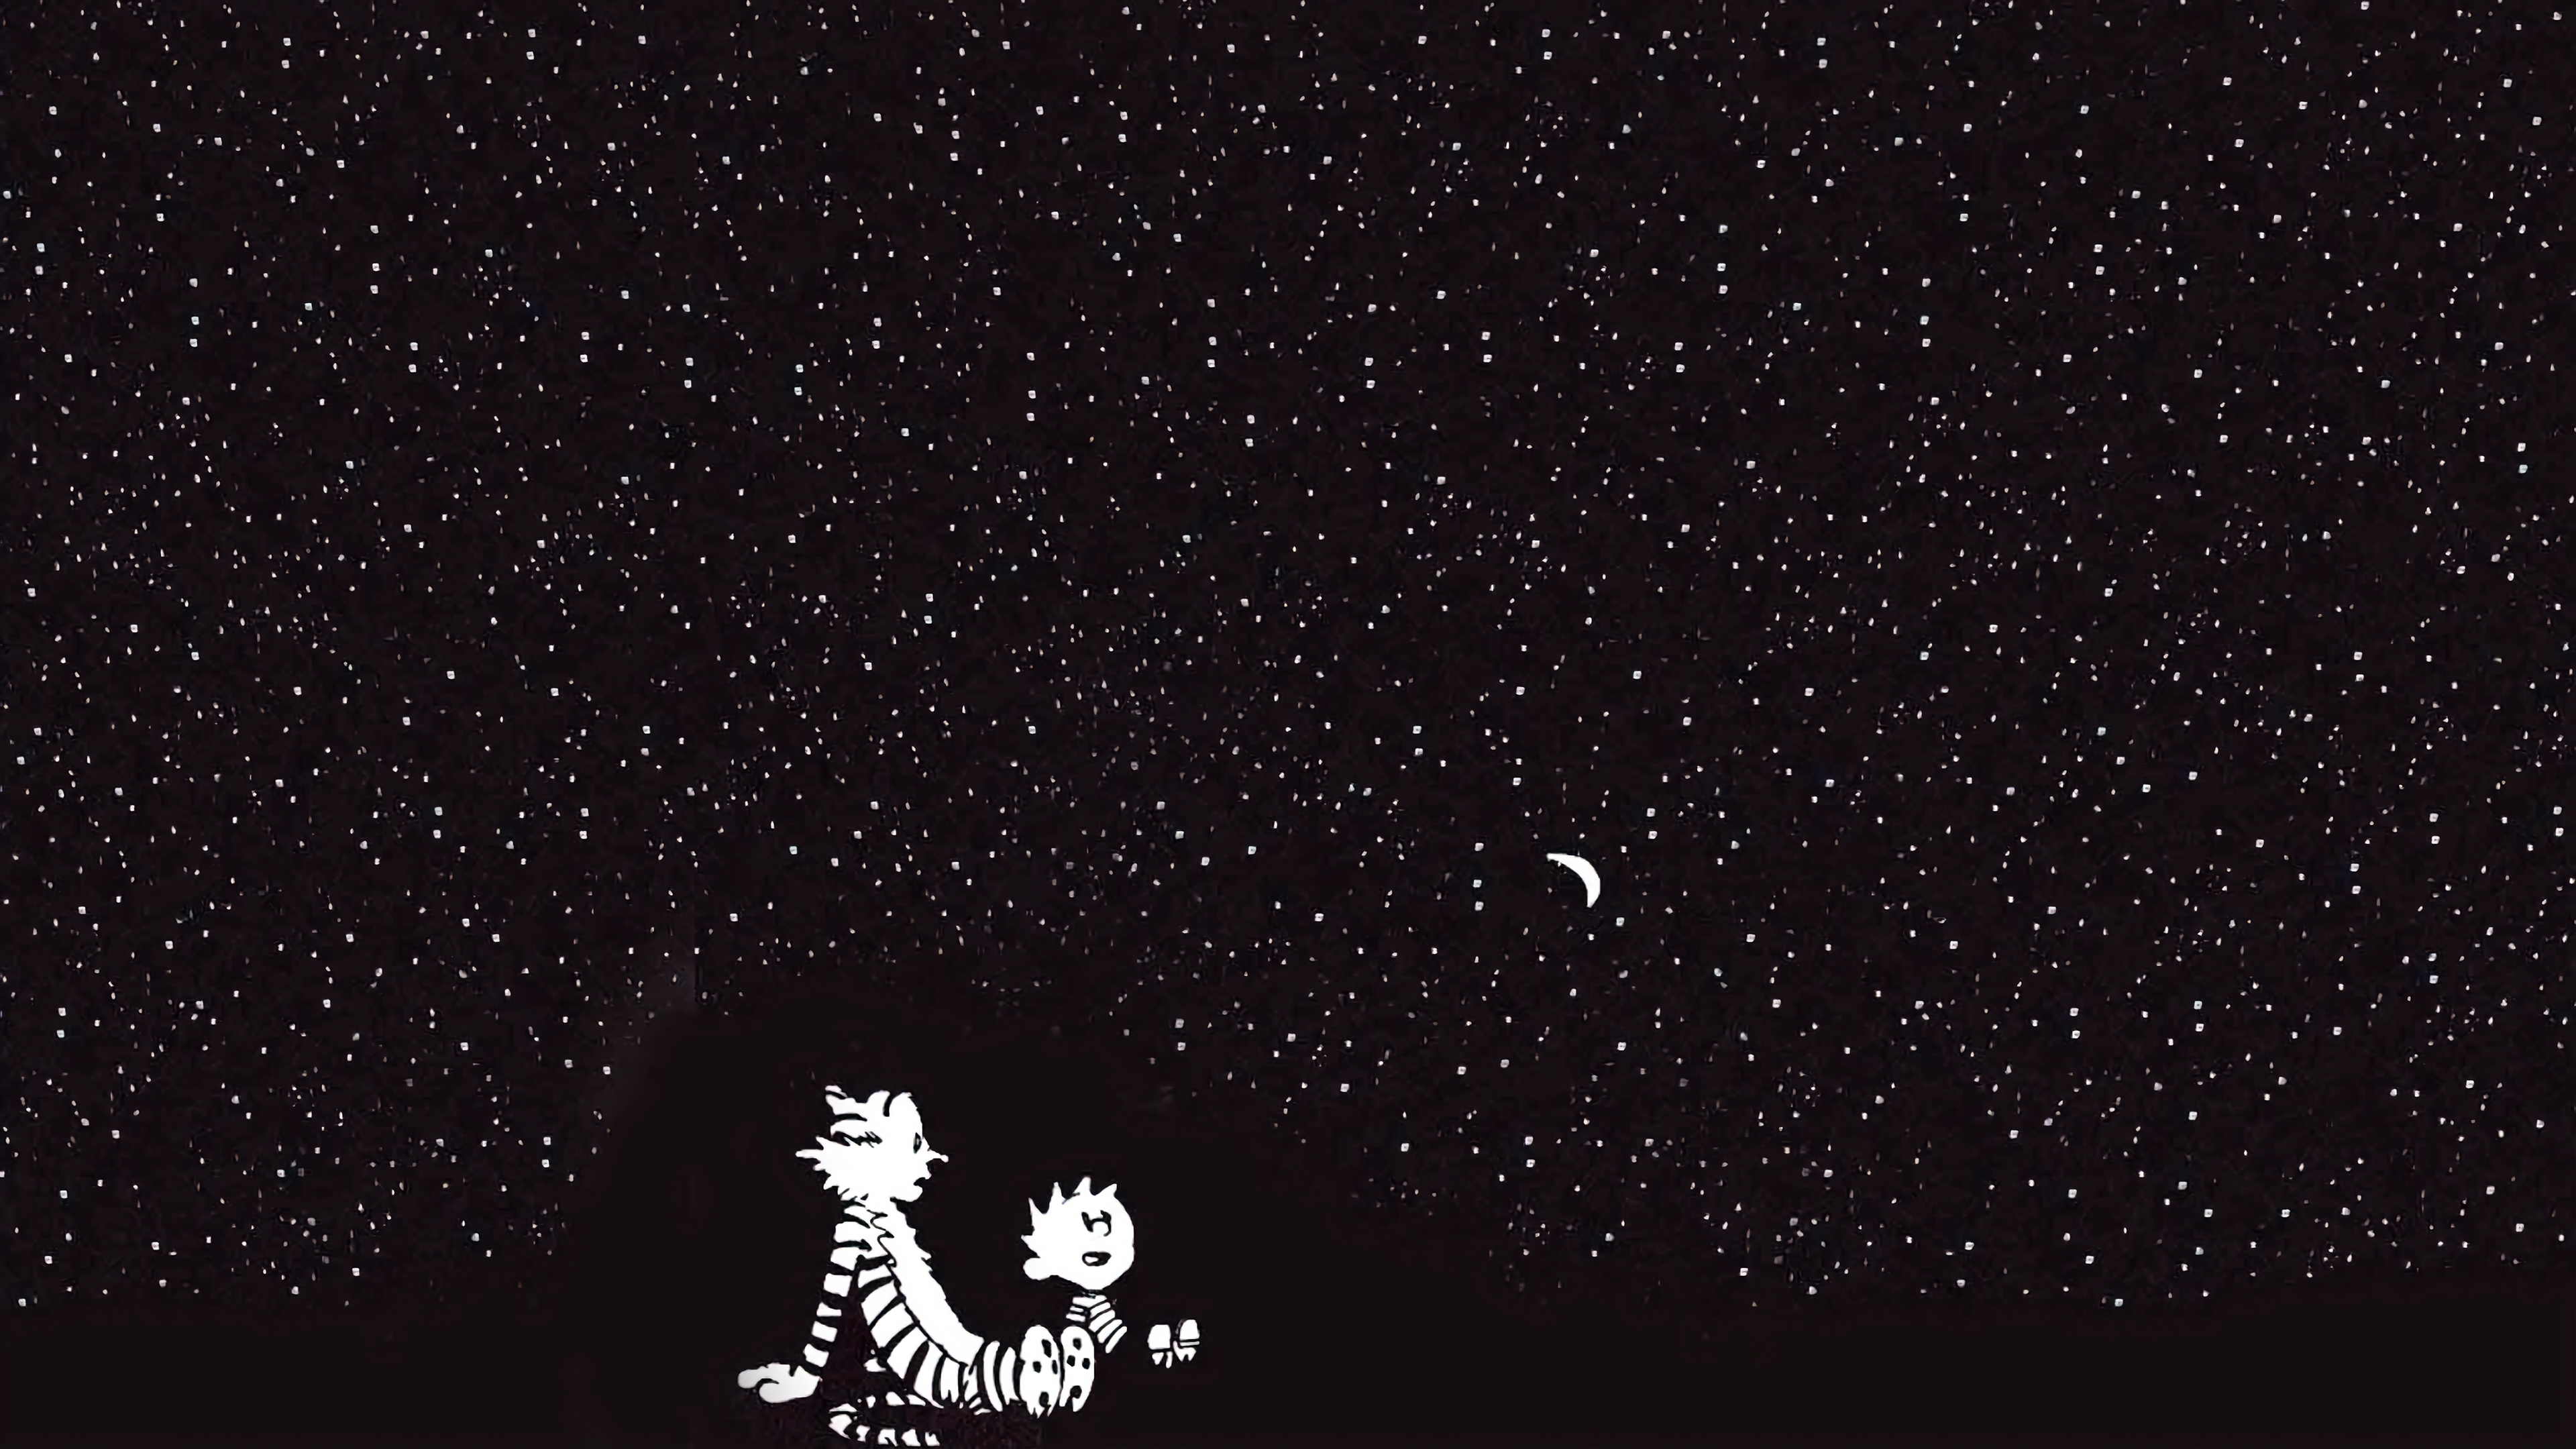 Calvin And Hobbes 4k Hd Cartoons 4k Wallpapers Images